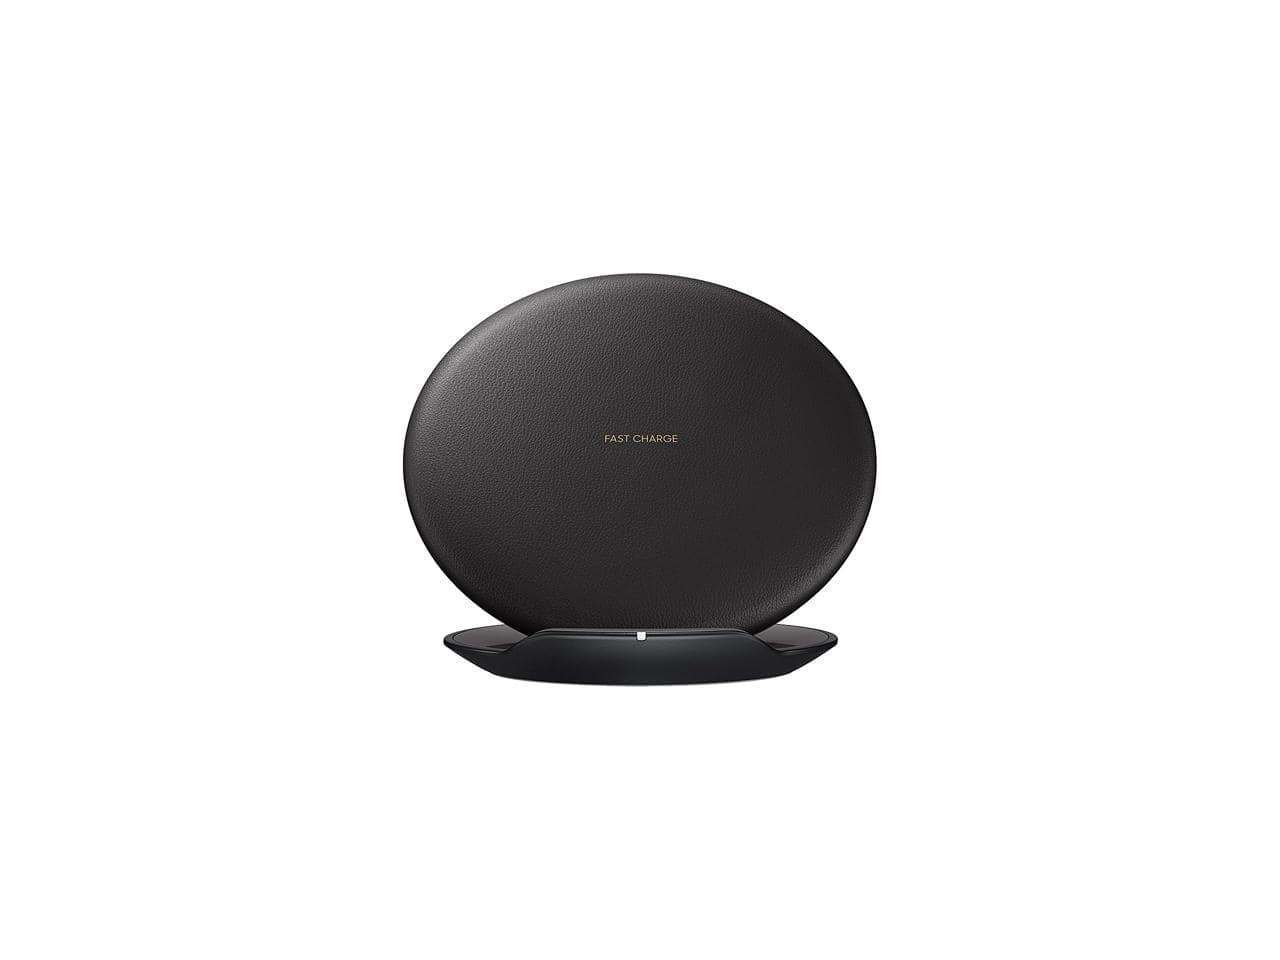 Samsung Fast Charge Wireless Charging Convertible Stand (Black) $29.99 + Free Shipping via Newegg